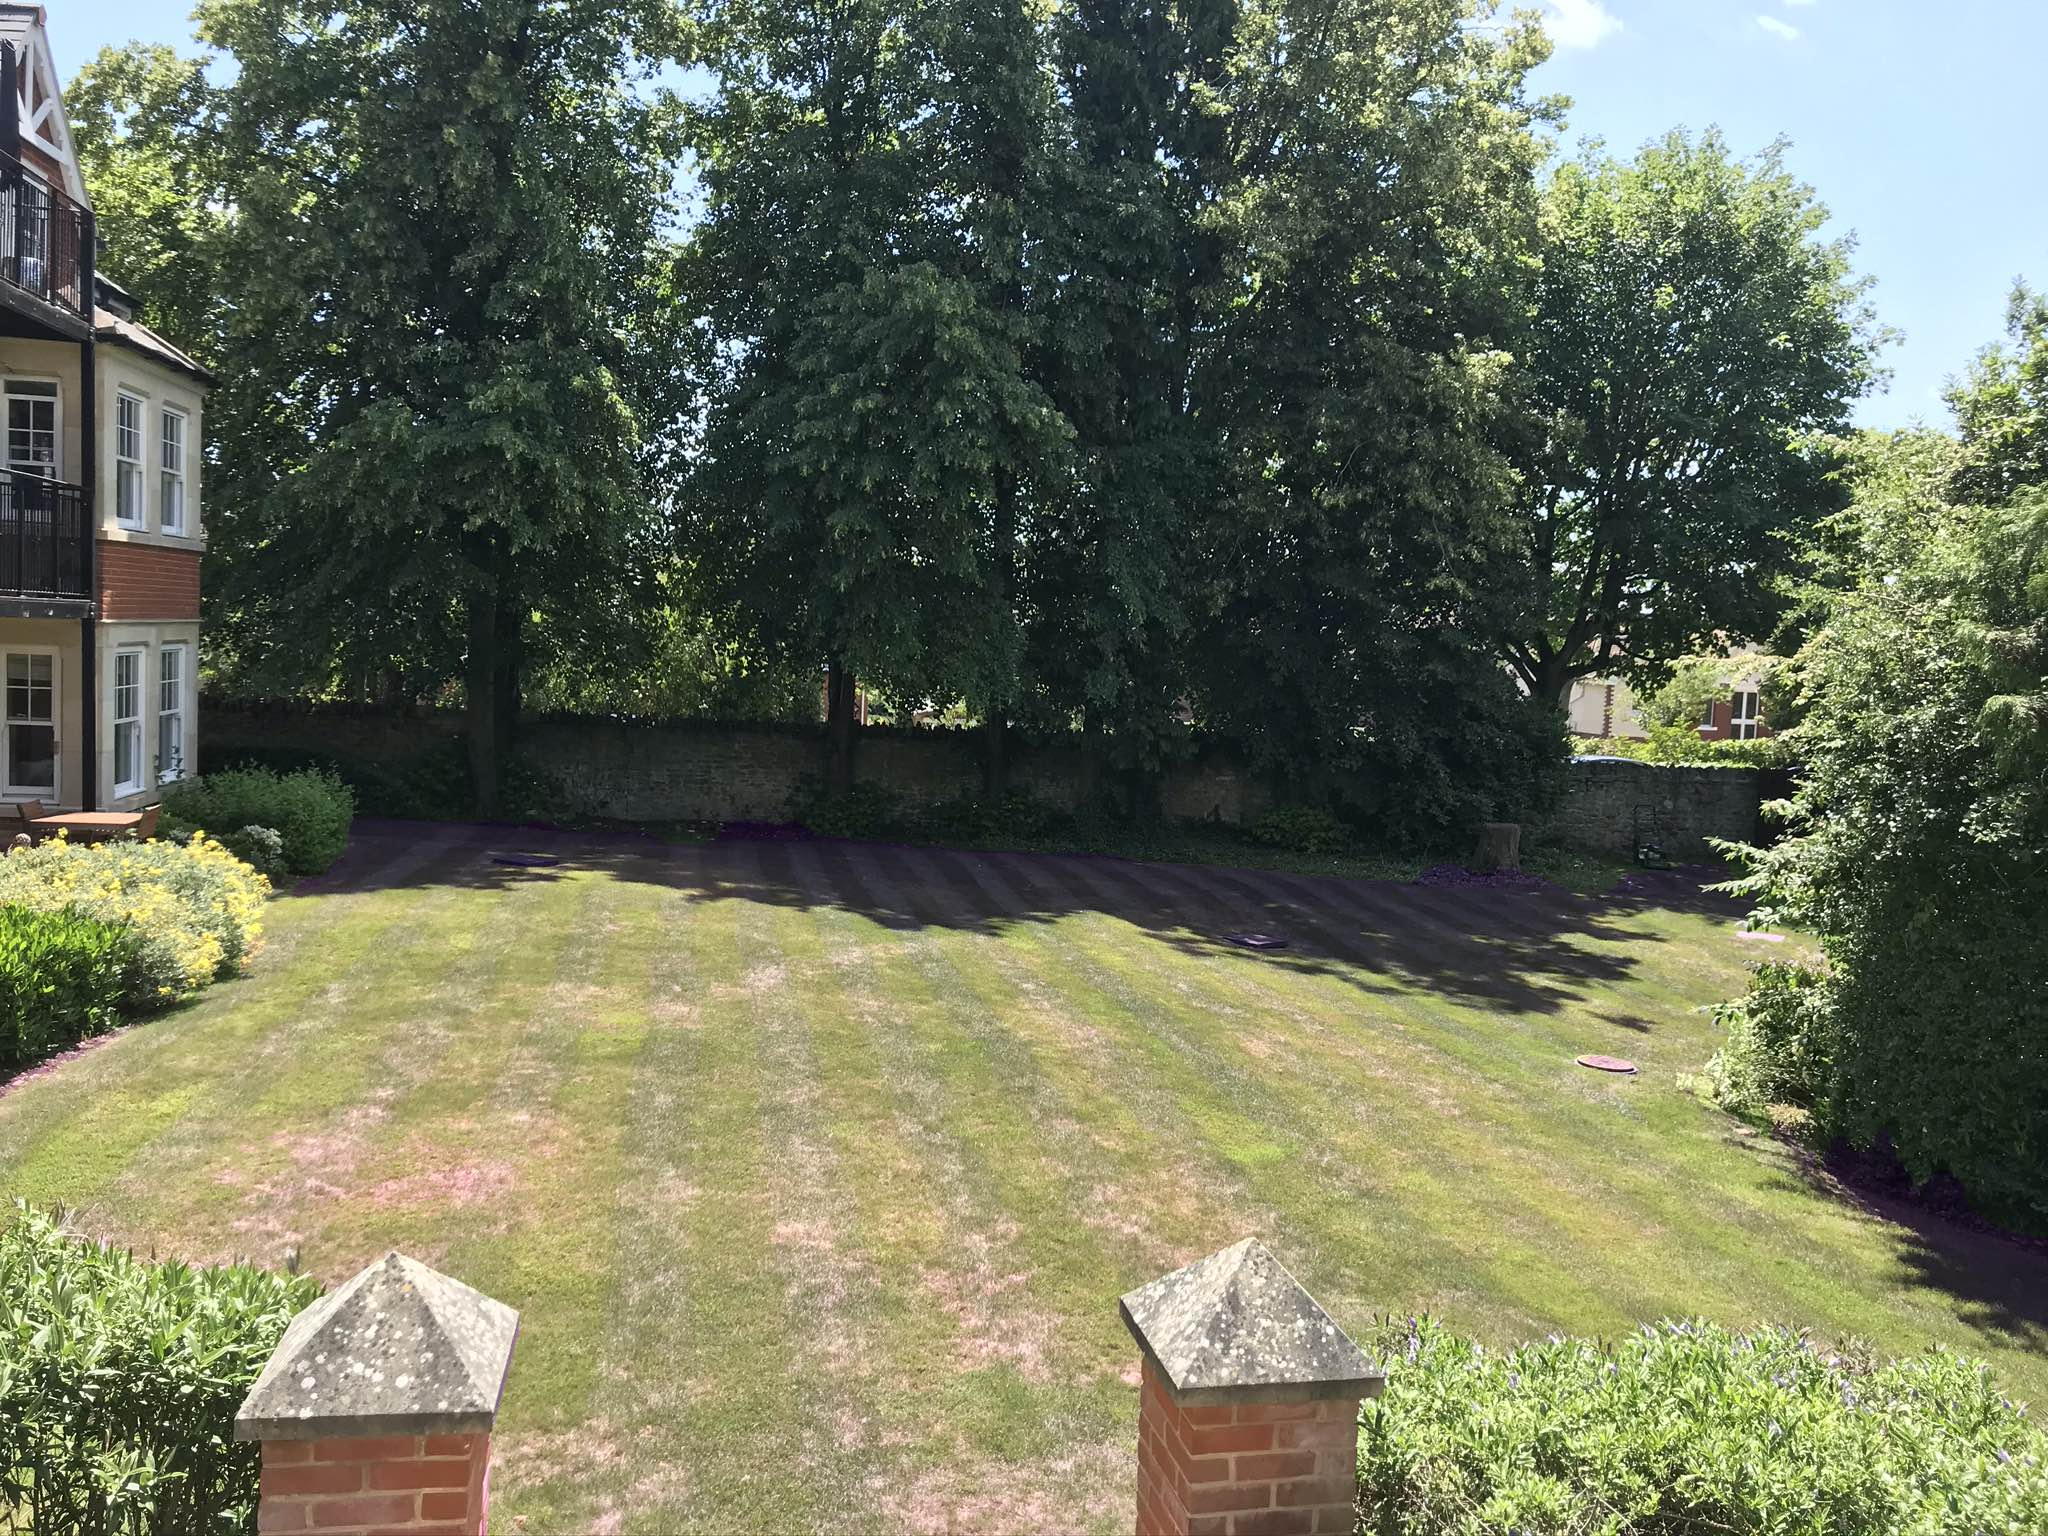 Westlecot House poor health lawn before fertiliser treatment by Johnson Lawn Care